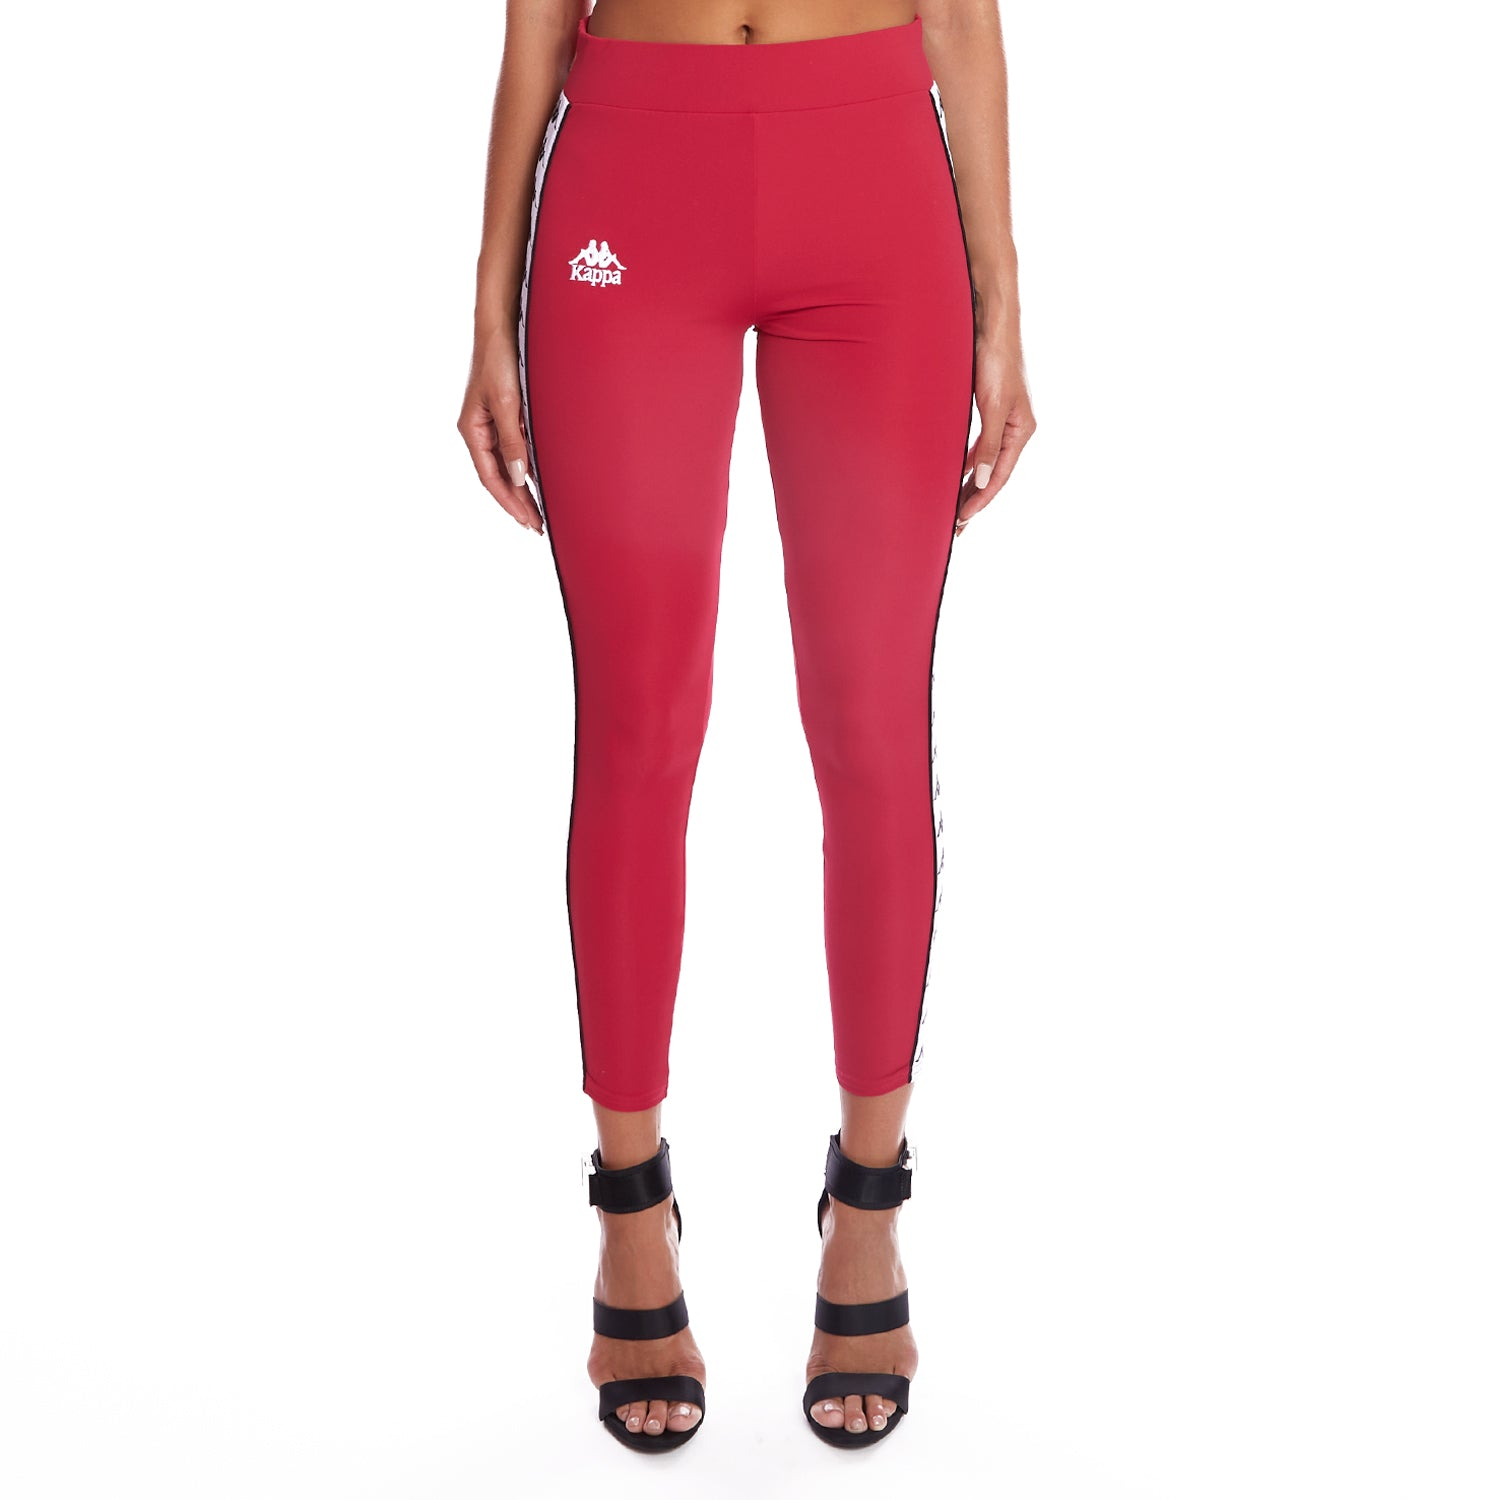 Kappa 222 Banda Barrio Leggings - Red Cyclamen White